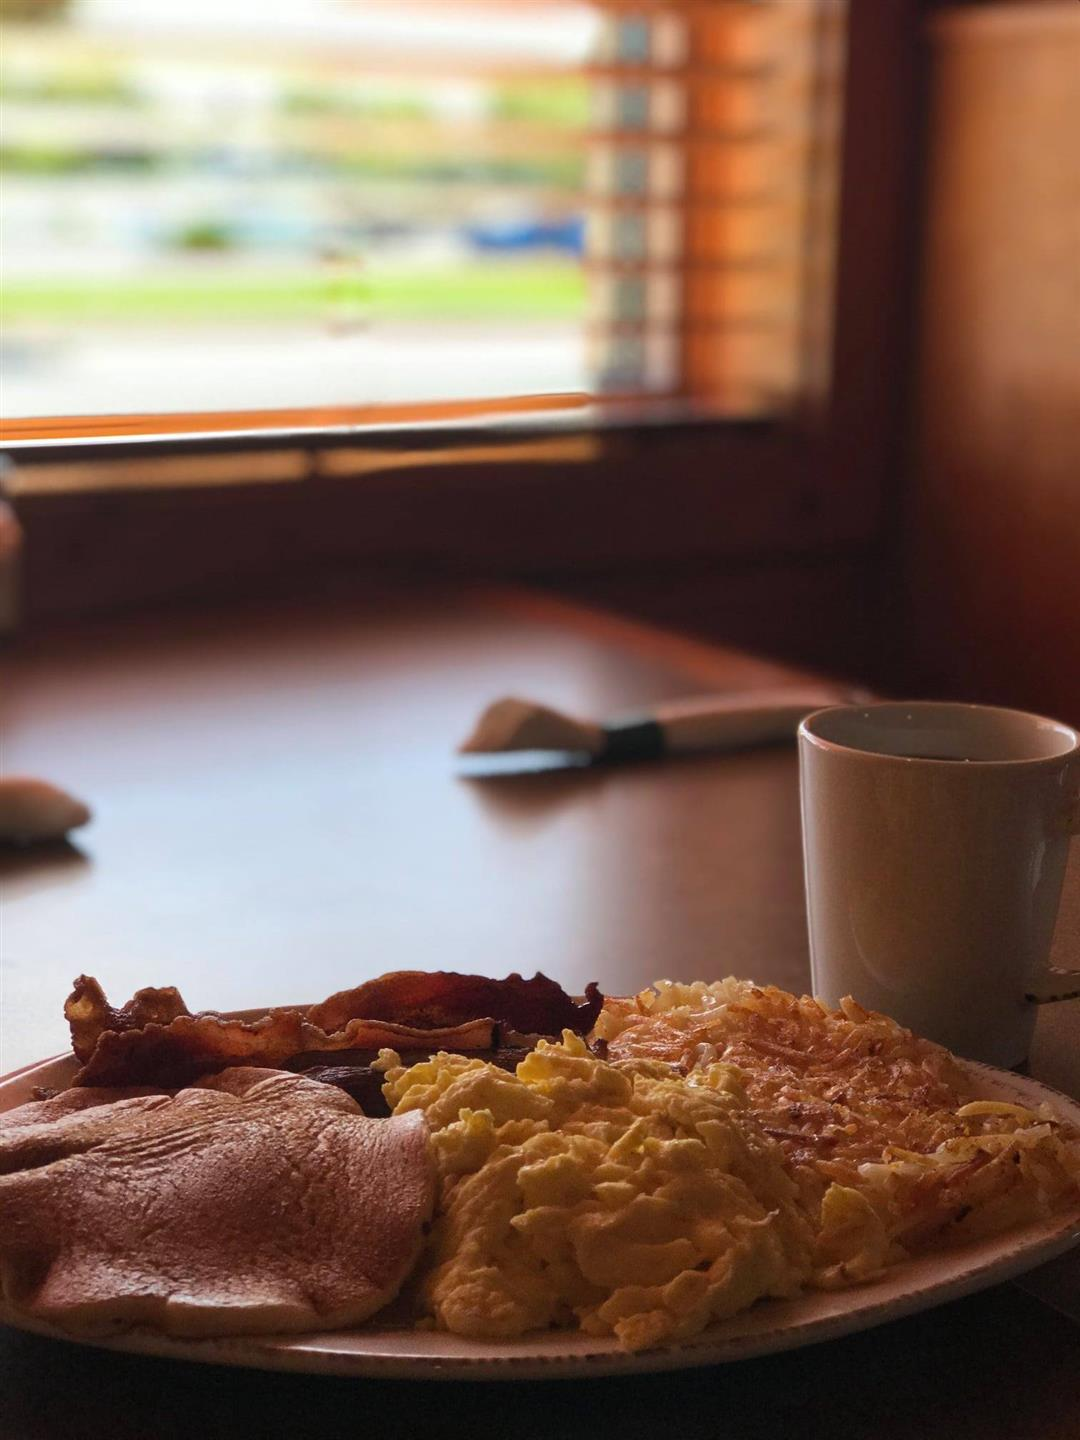 pancake, eggs, and bacon on a plate with a cup of coffee